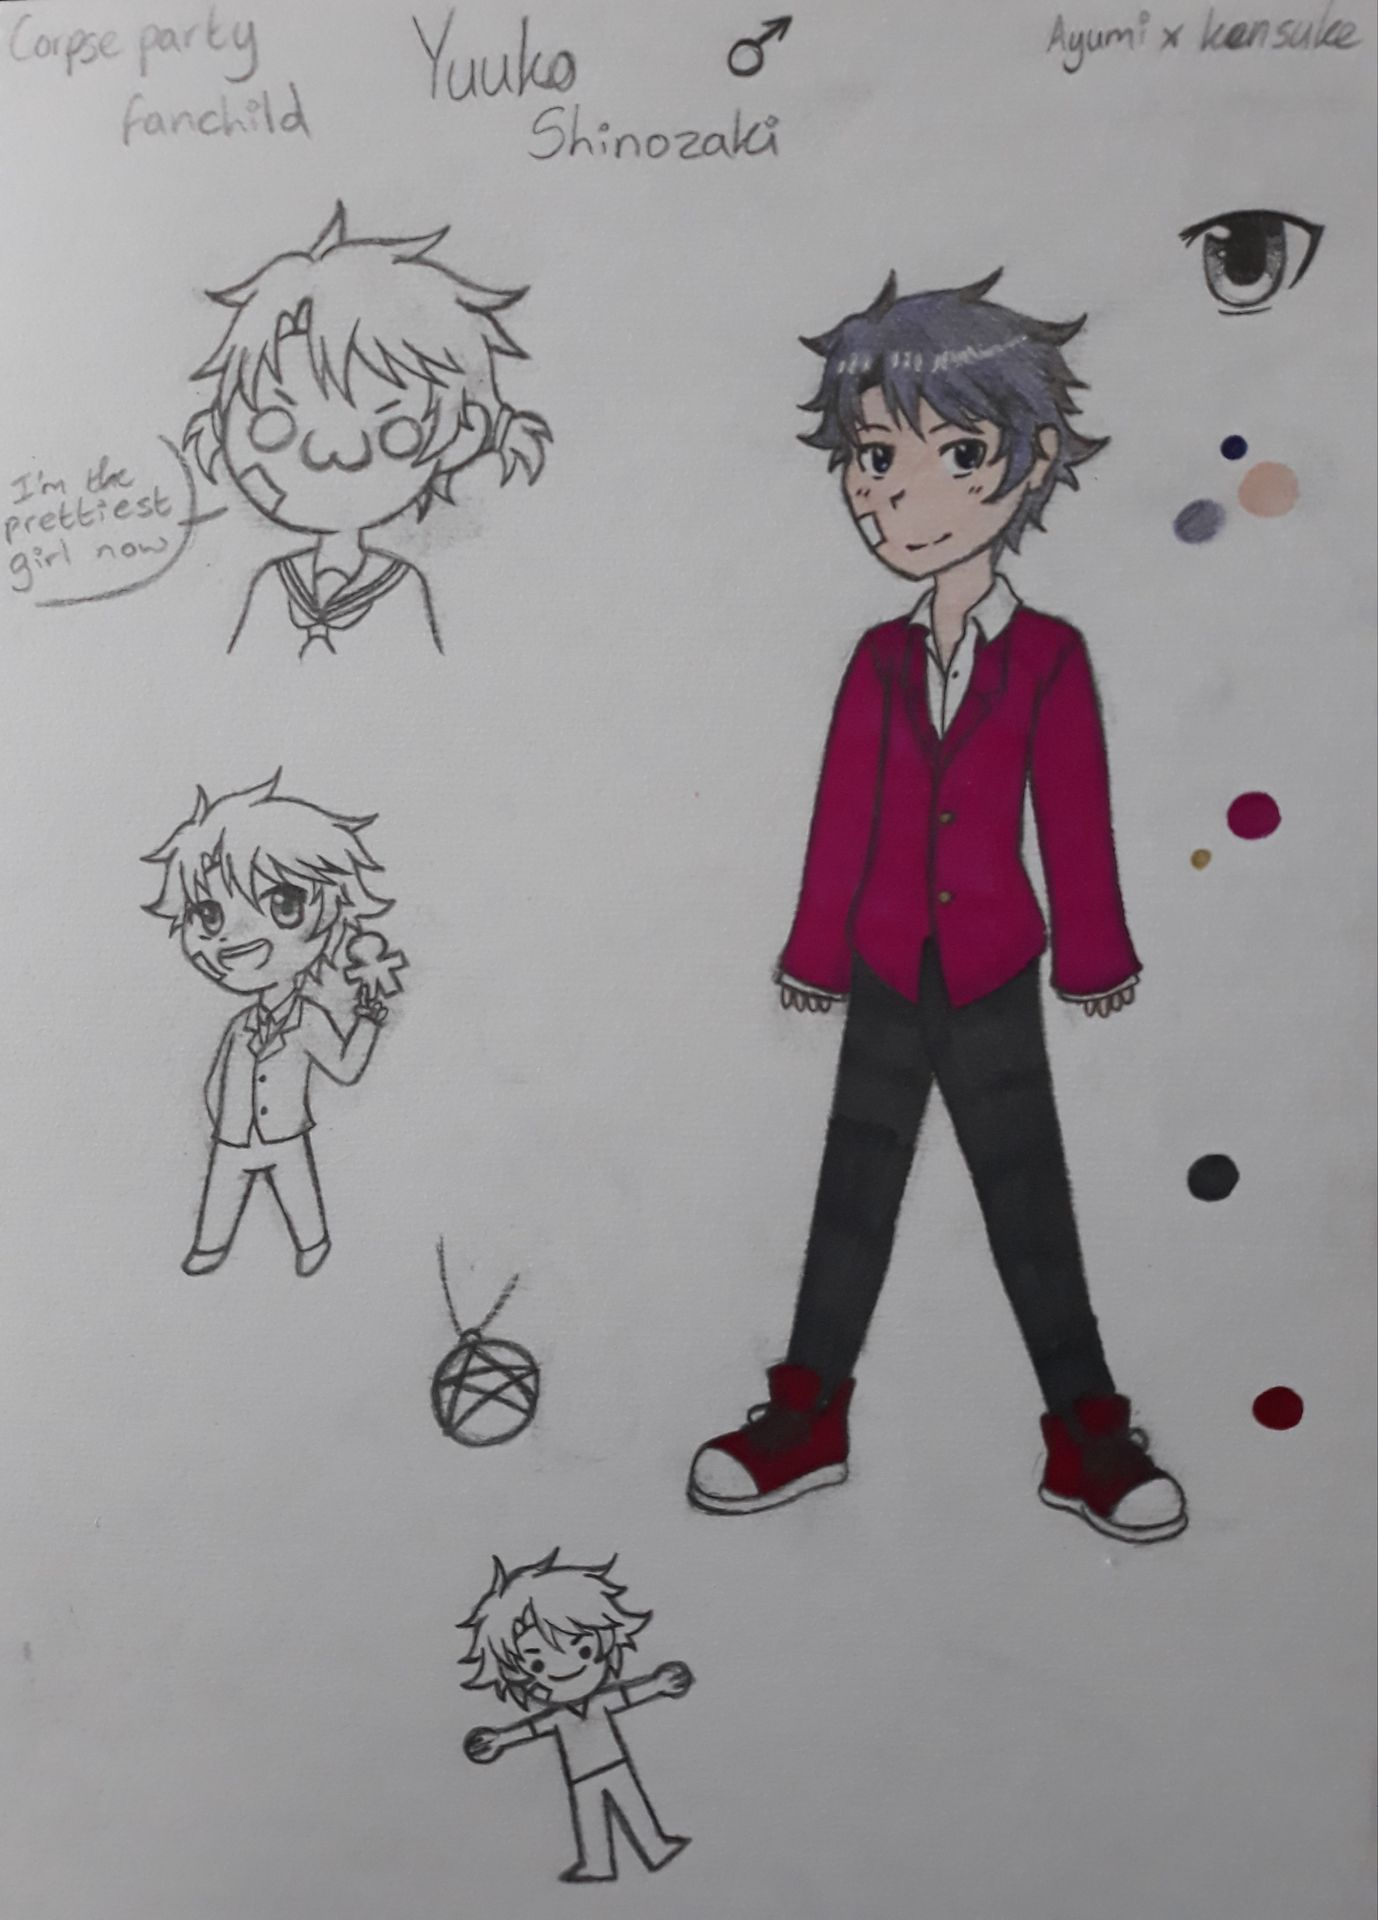 corpse party yuuya kizami fanart